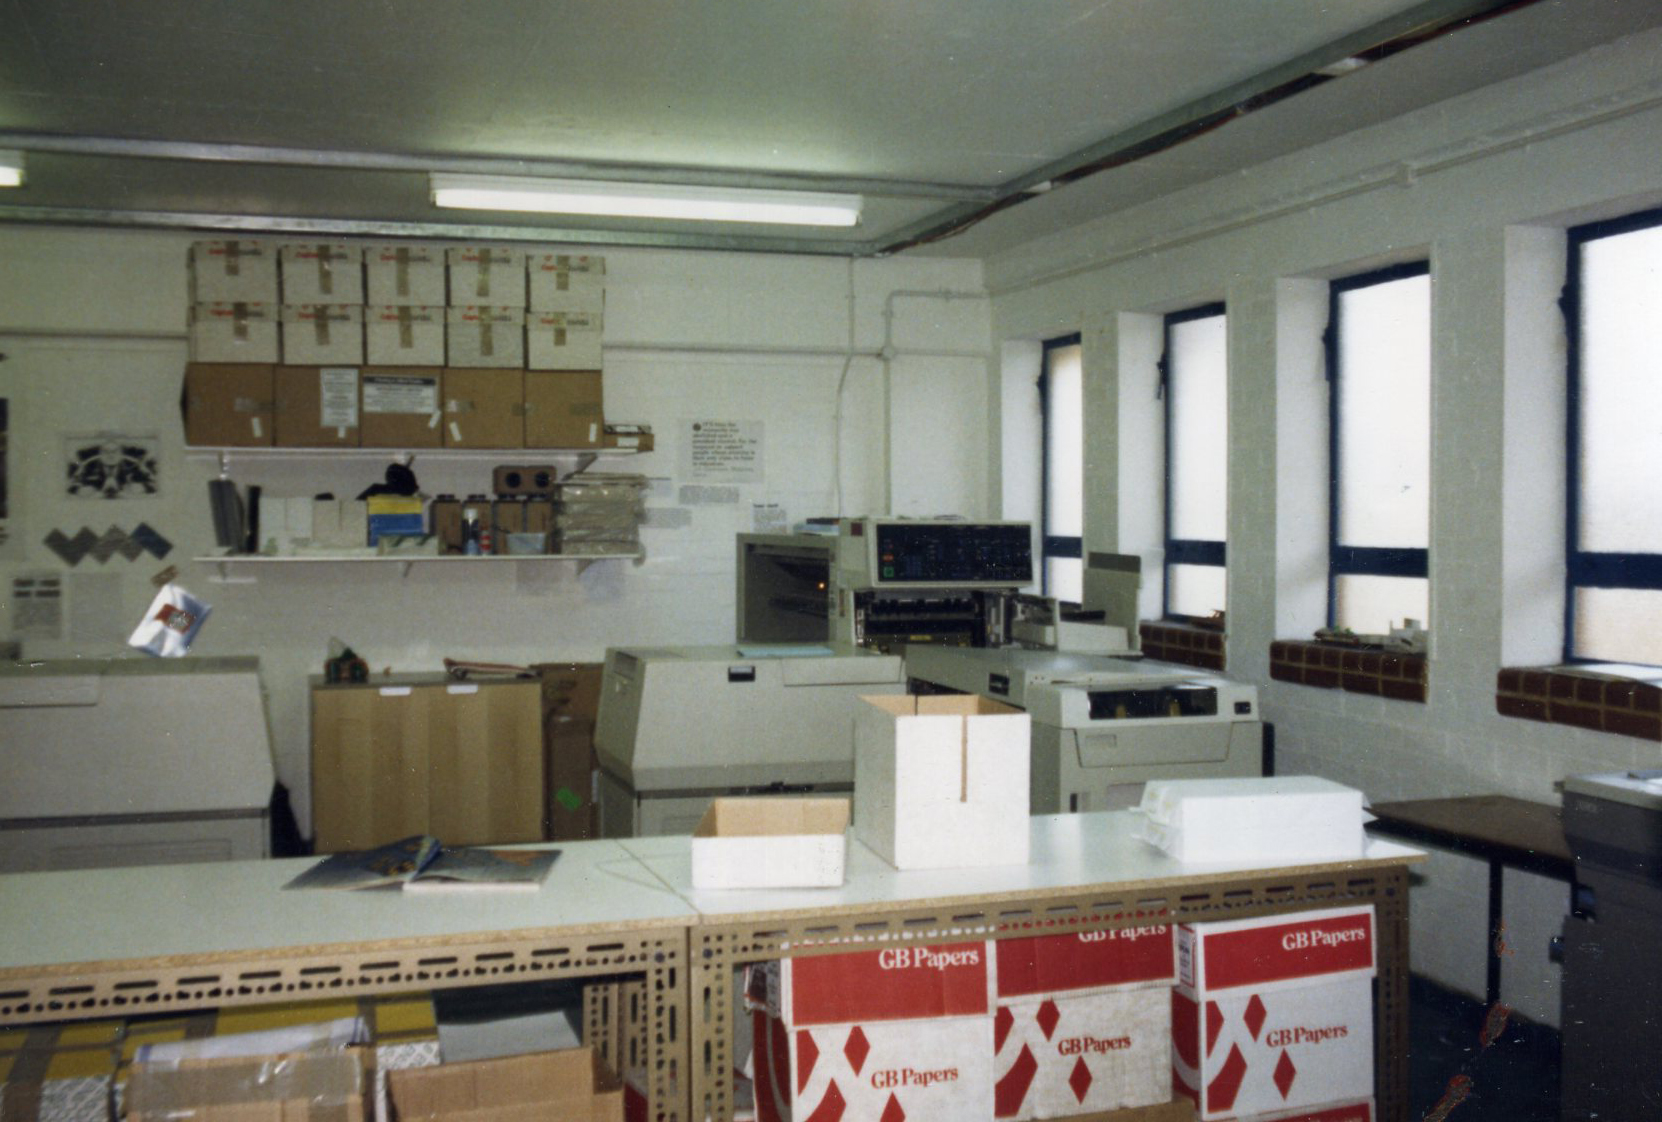 Our first factory circa 1987. Early Xerox digital presses in the background.